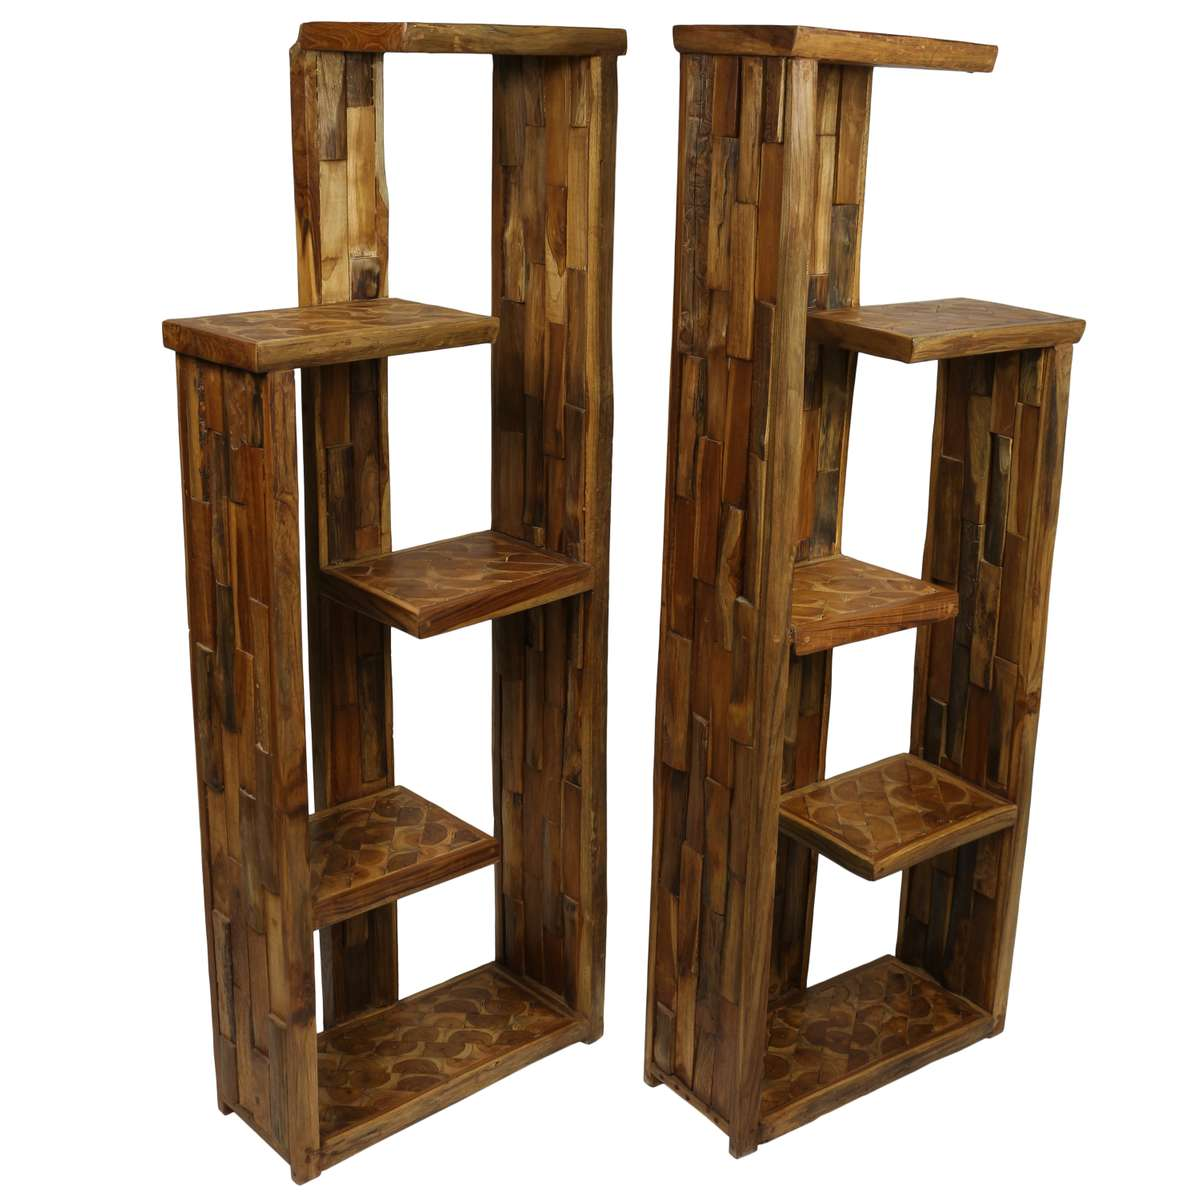 Bücherregal Rustikal Design Regal 2er Set Teakholz Holzregal Bücherregal Raumteiler Standregal Rustikal 166 Cm Höhe